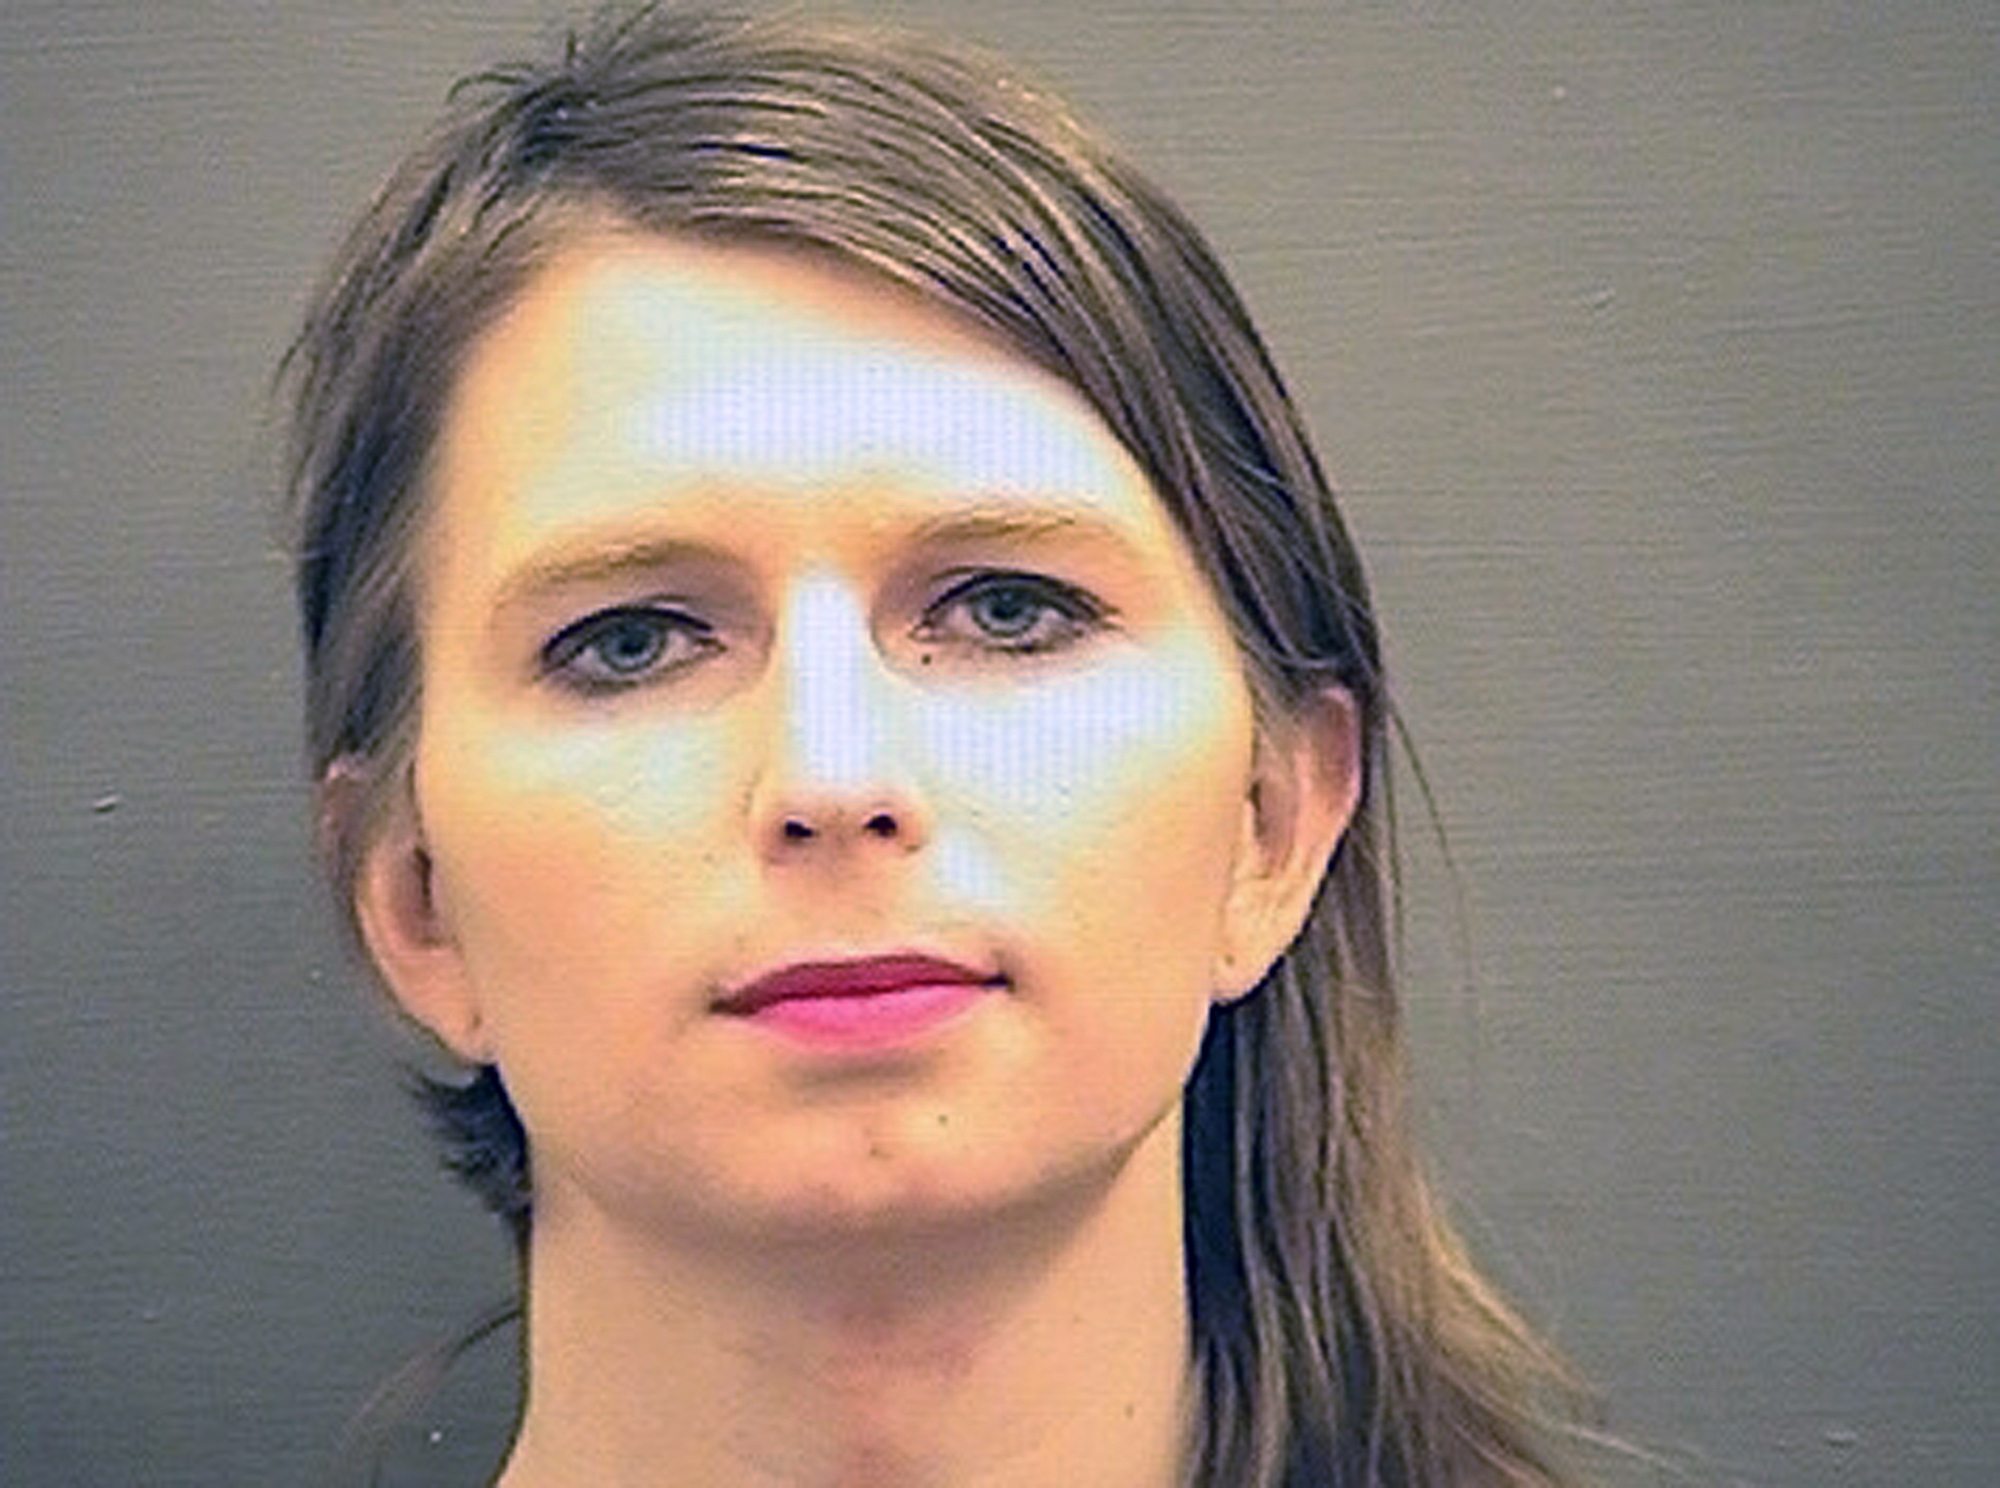 WikiLeaks source Chelsea Manning appealing contempt ruling: Report